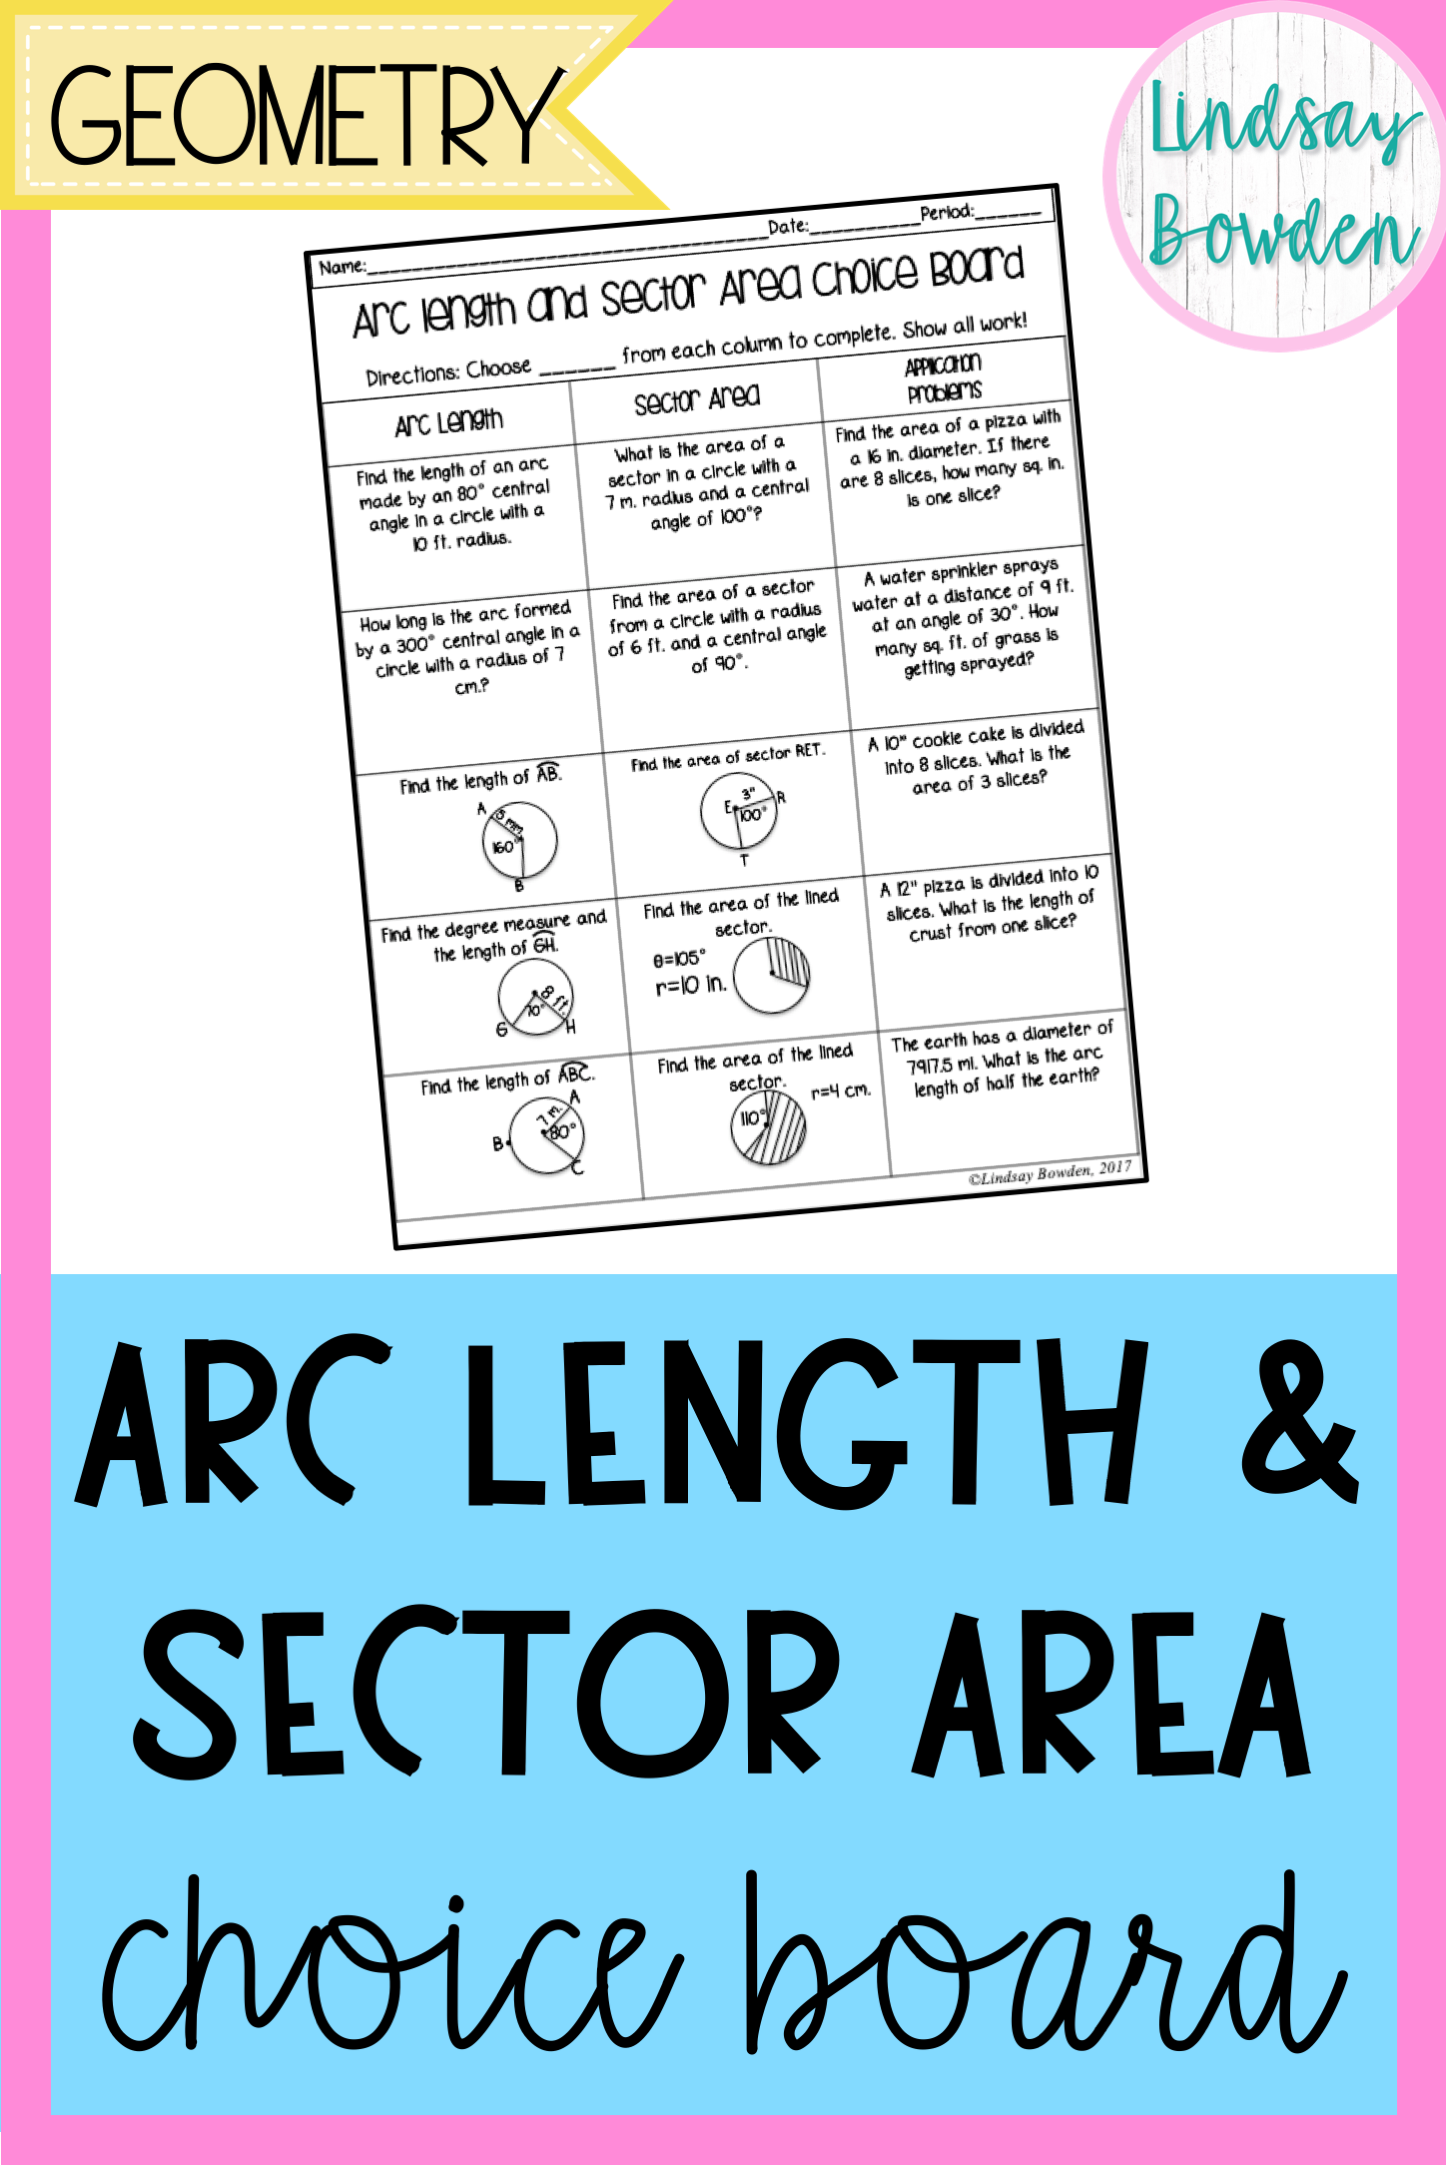 Arc Length And Sector Area Choice Board